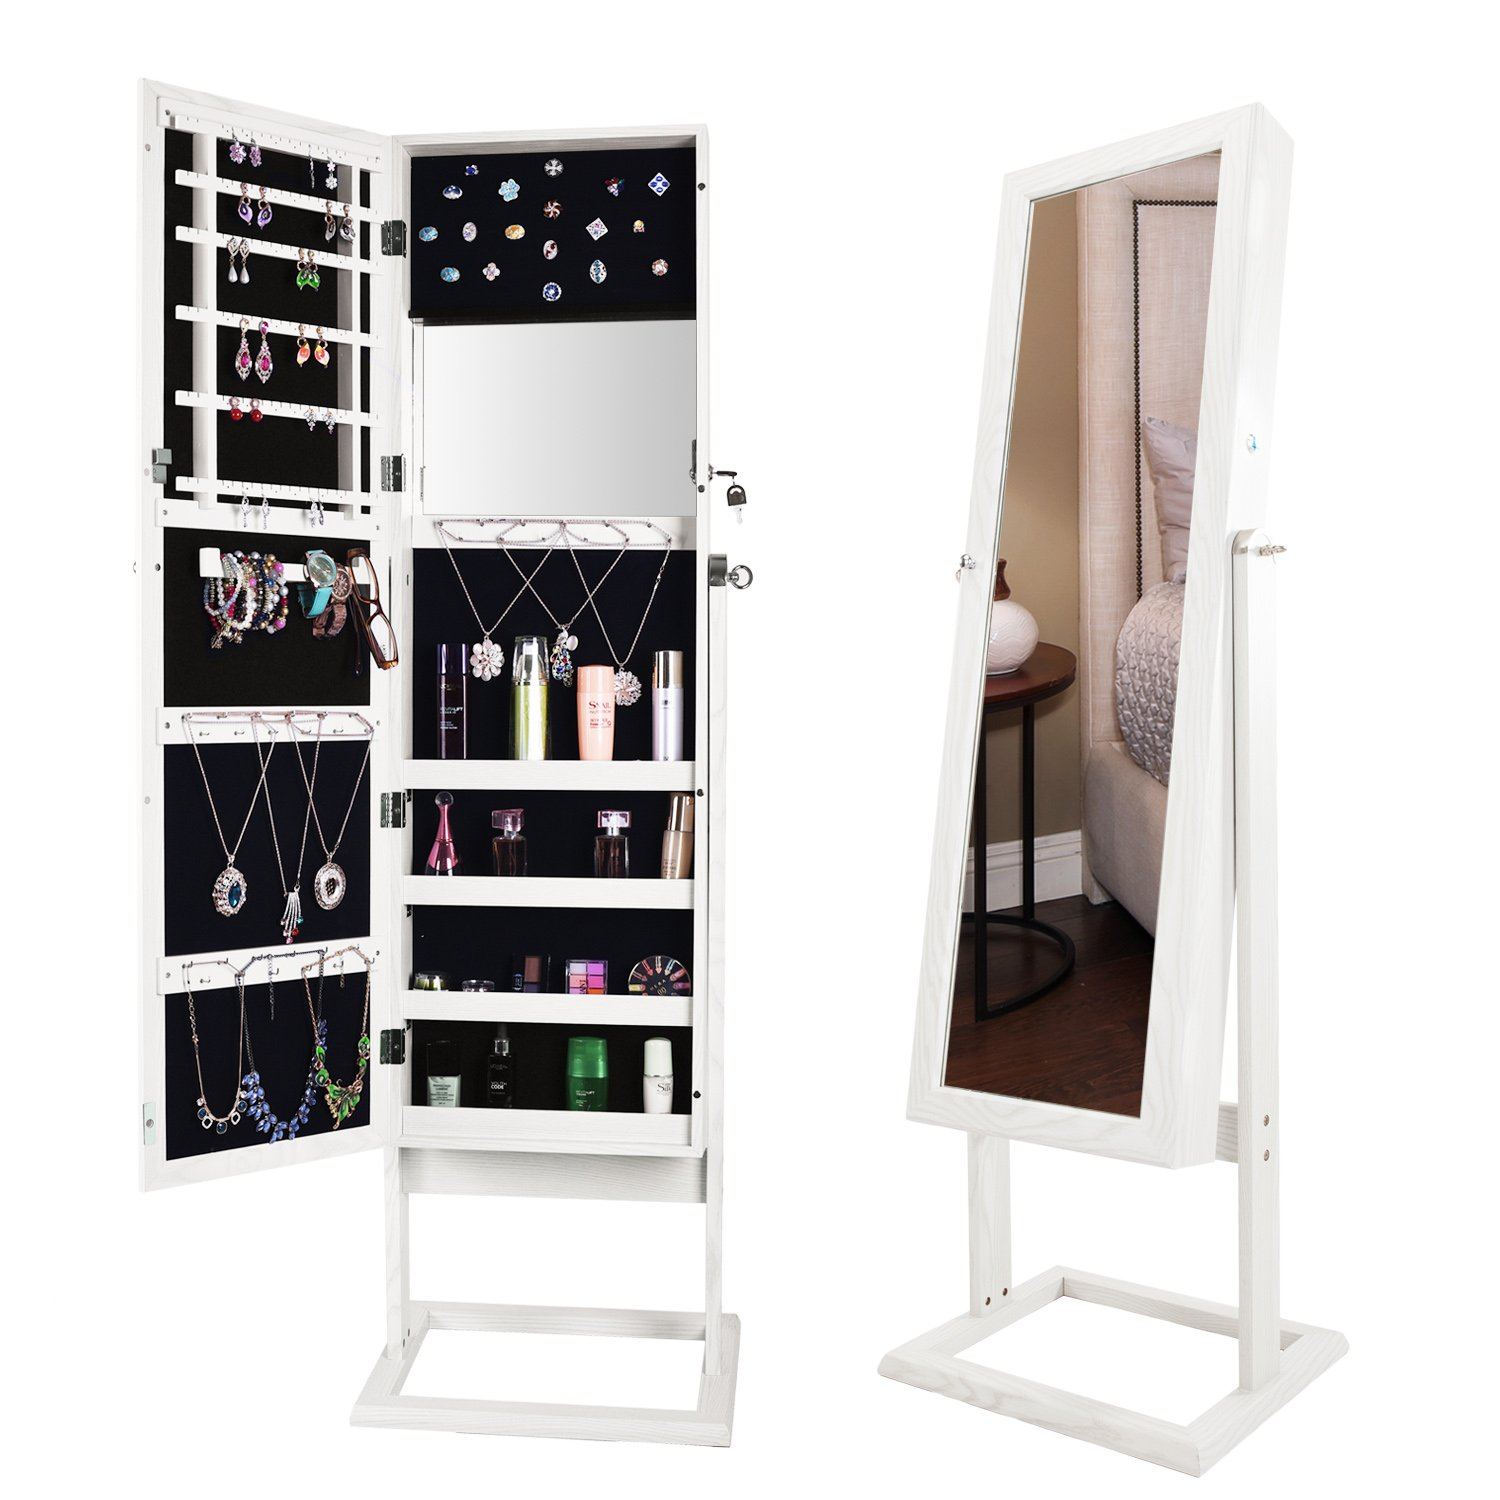 Bonnlo Jewelry Armoire Square Stand with 4 Adjustable Angle Tilting, Well Packed by styrofoam & Stiffer Covering, Lockable Heavy Duty Bedroom Make up Mirror Cabinet Organizer Closet by Bonnlo (Image #1)